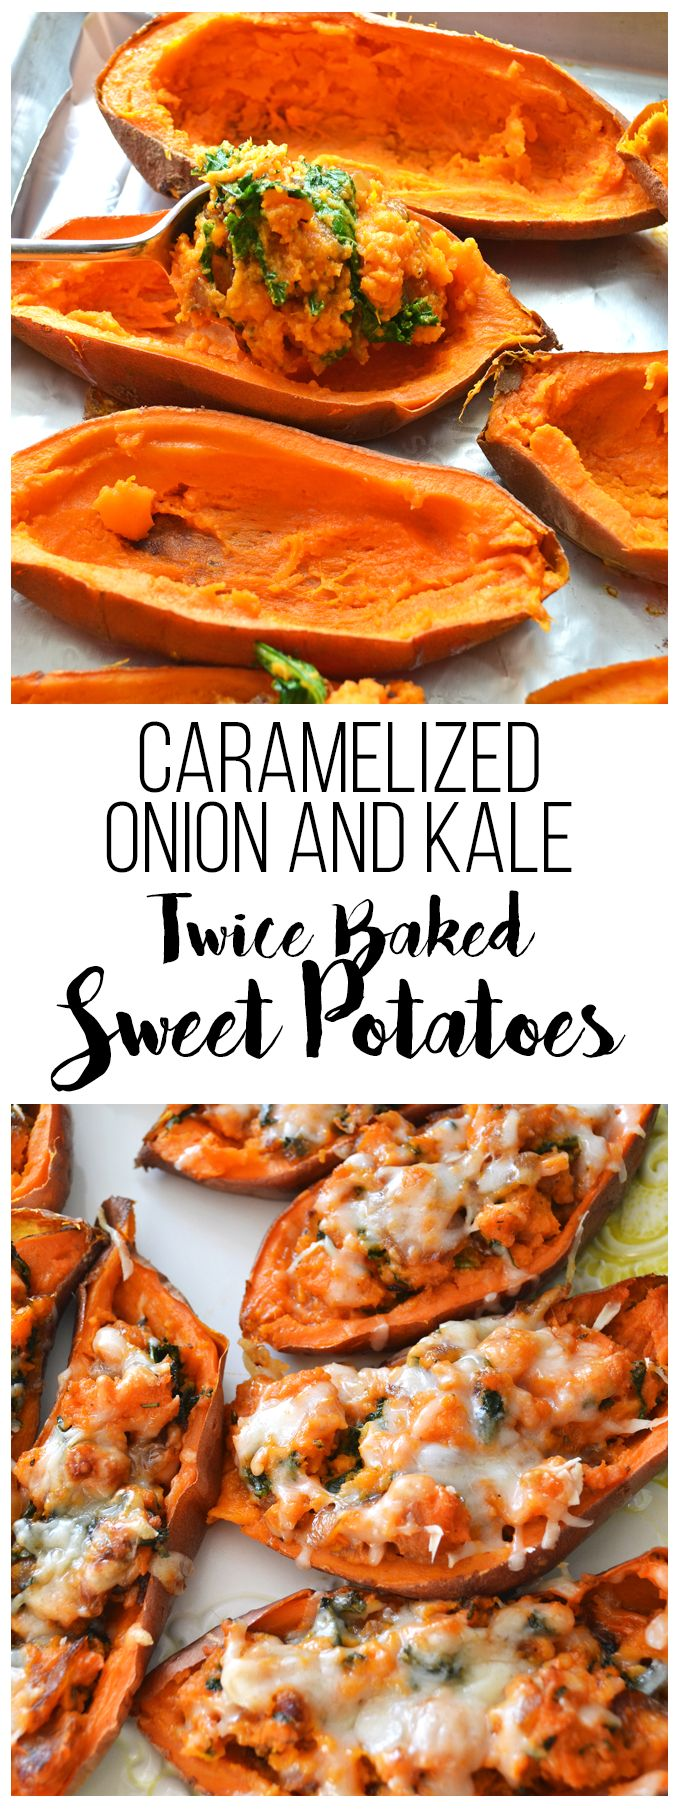 These Caramelized Onion & Kale Twice Baked Sweet Potatoes are packed with flavor and topped with gruyere cheese!